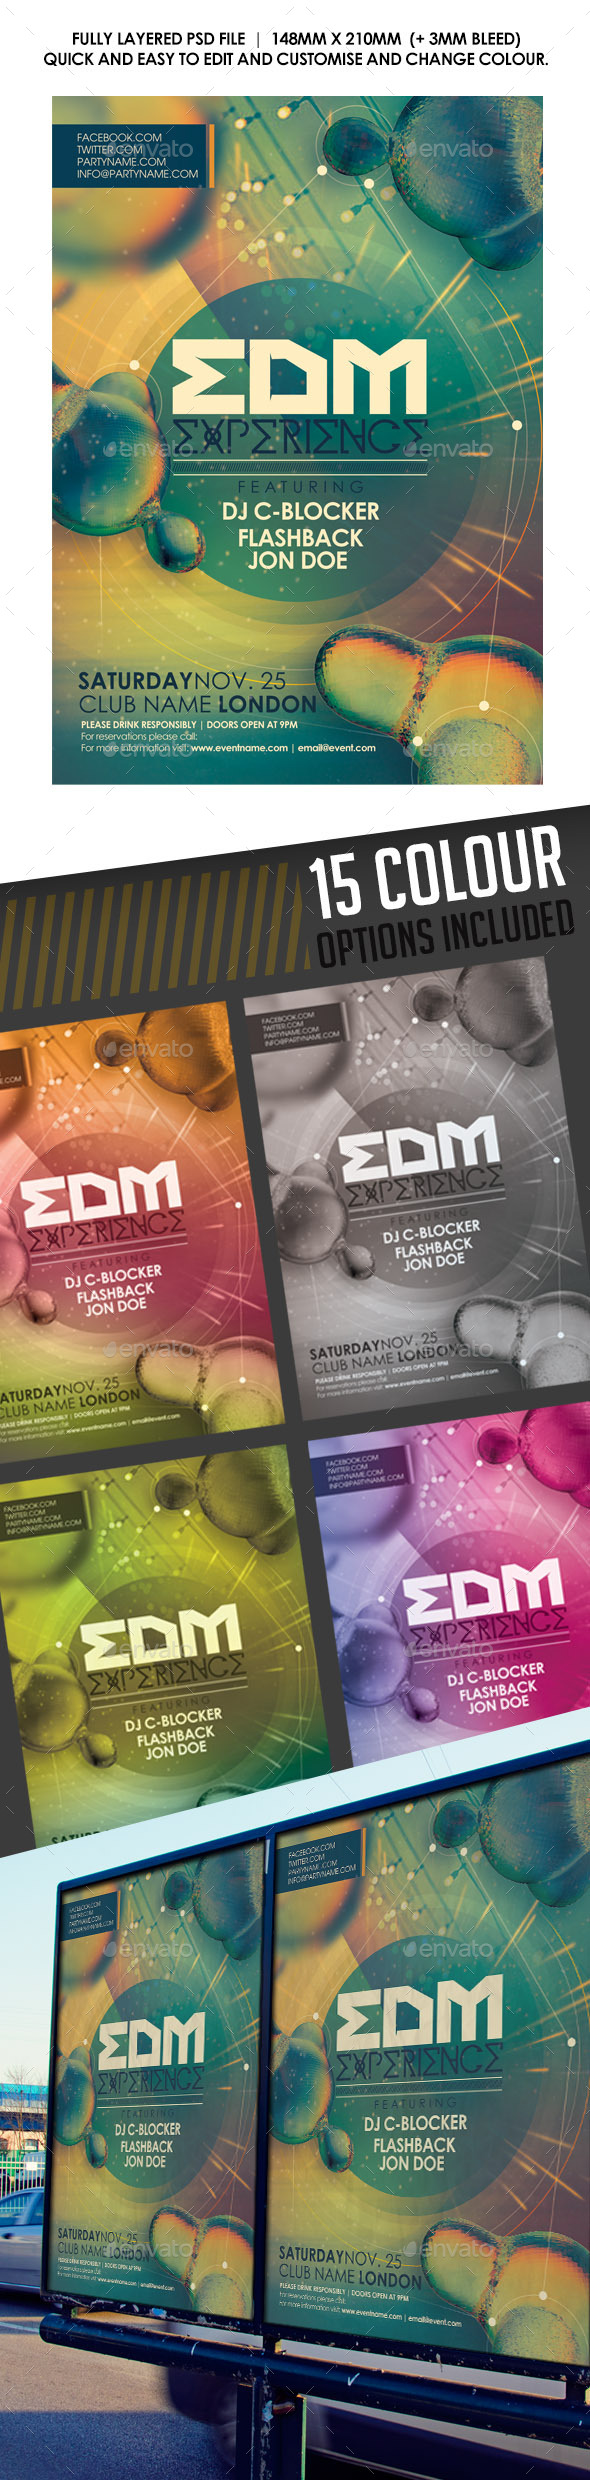 EDM Experience Flyer - Clubs & Parties Events